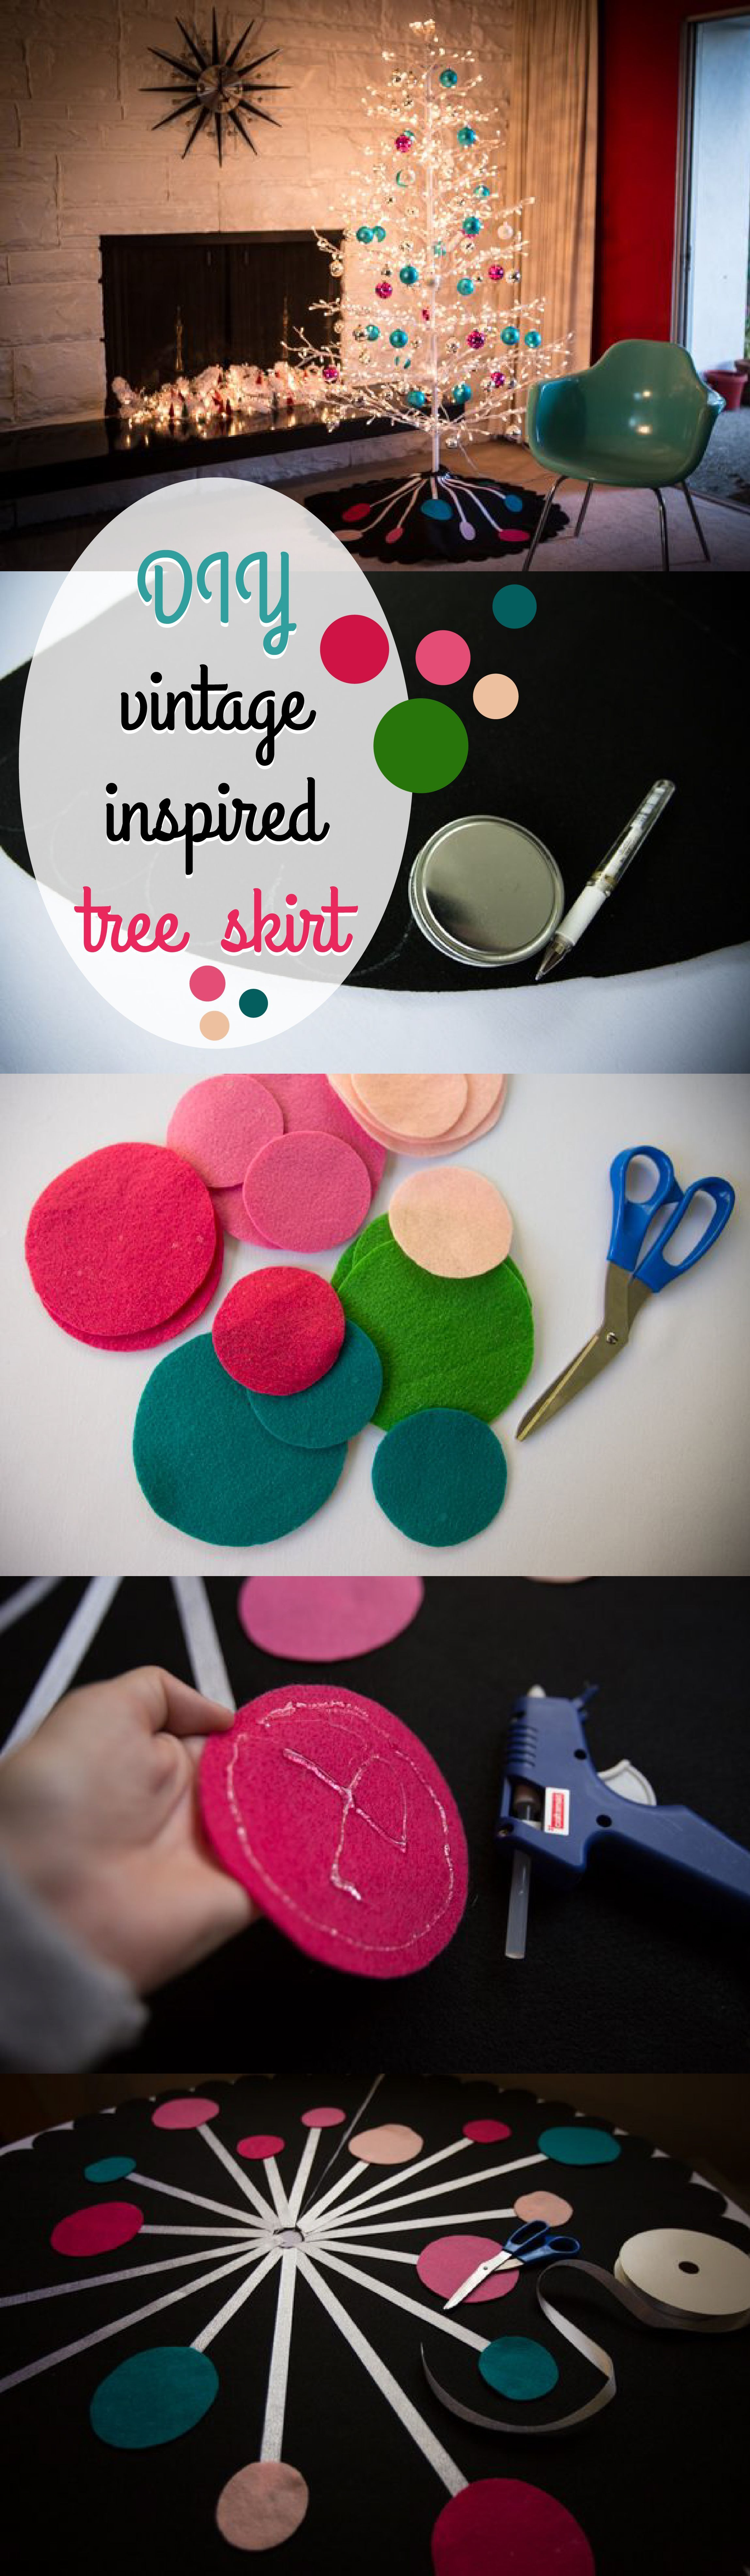 DIY an easy no-sew vintage feel tree skirt for your modern Christmas tree. It's funky and fun and since you are making it yourself, it adds that warm feel to your holiday decor.  christmassewing #diychristmastreeskirt #retrochristmastree #modernchristmas #christmastreedecorations #xmastrees #christmastime #christmascrafts #christmasornaments